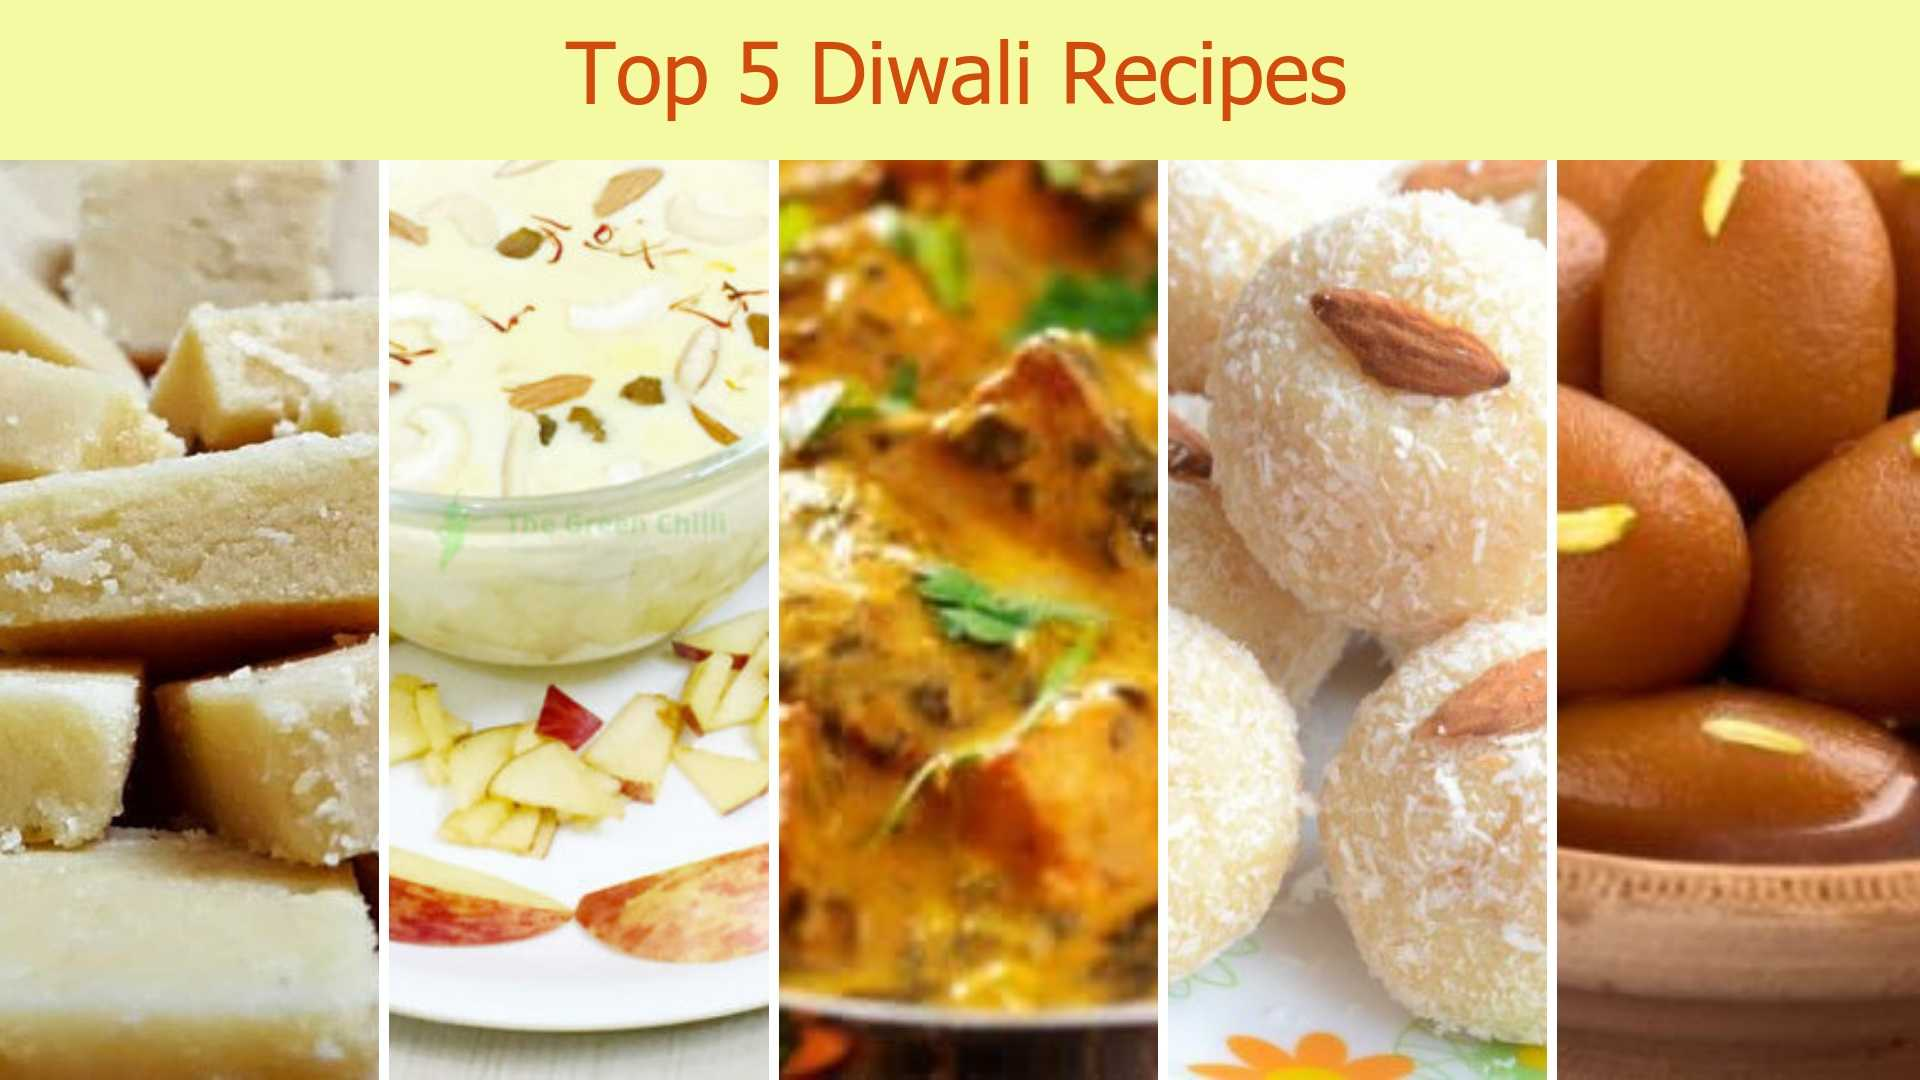 Top 5 Diwali Recipes